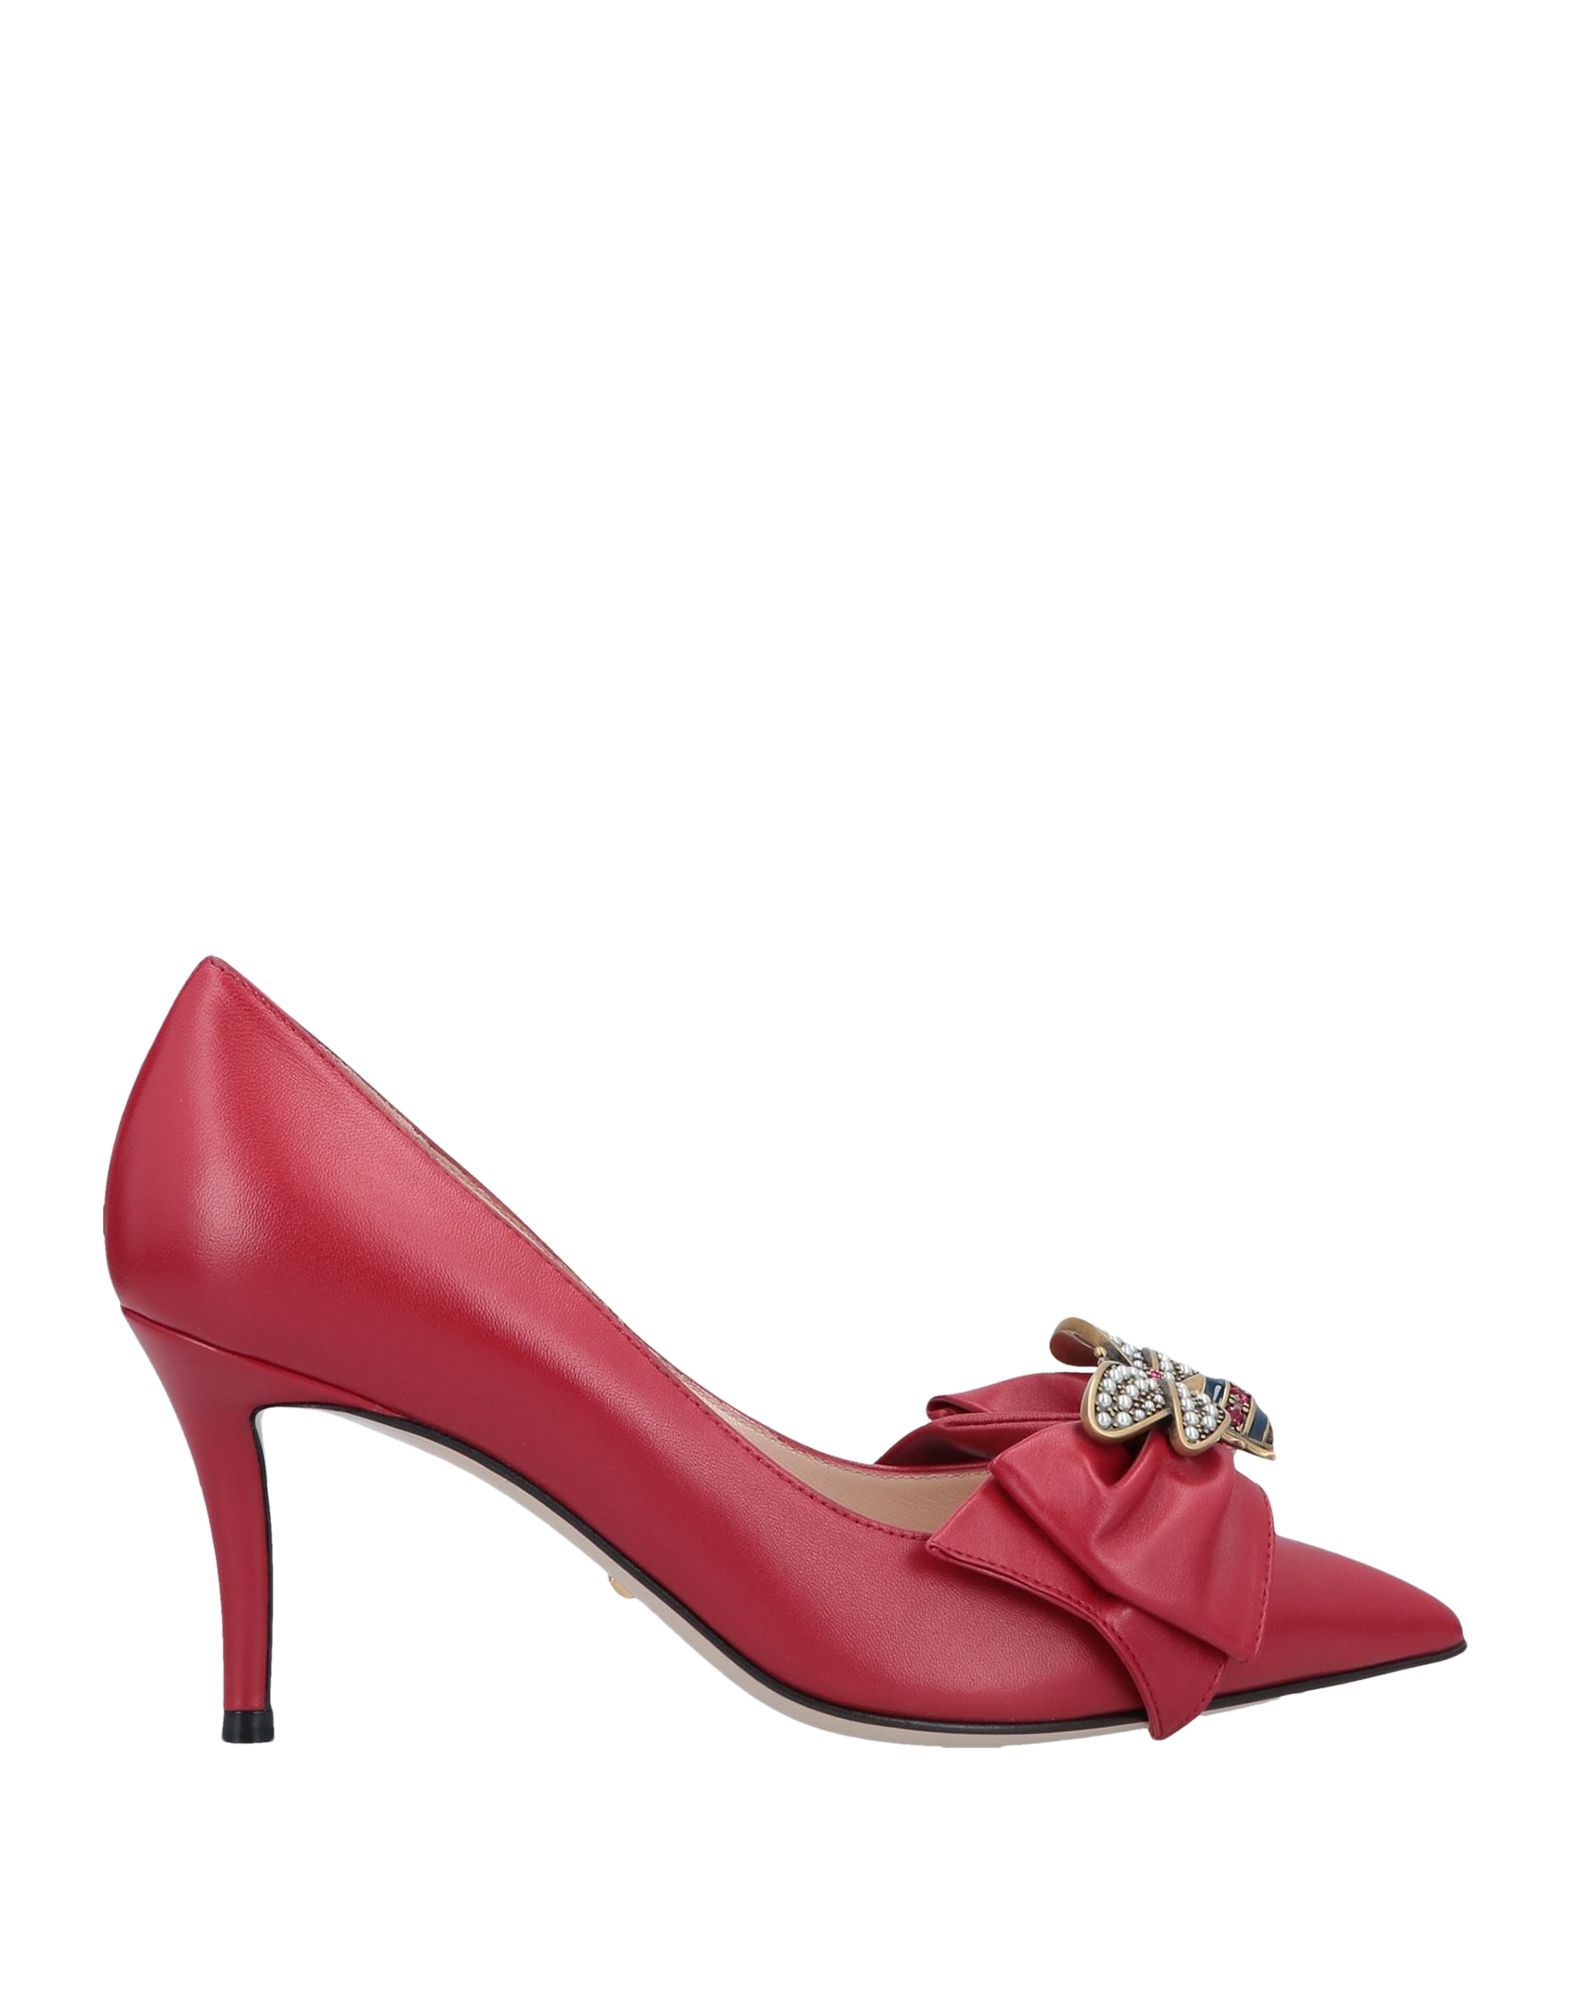 89d948c05c Gucci Pumps In Red | ModeSens